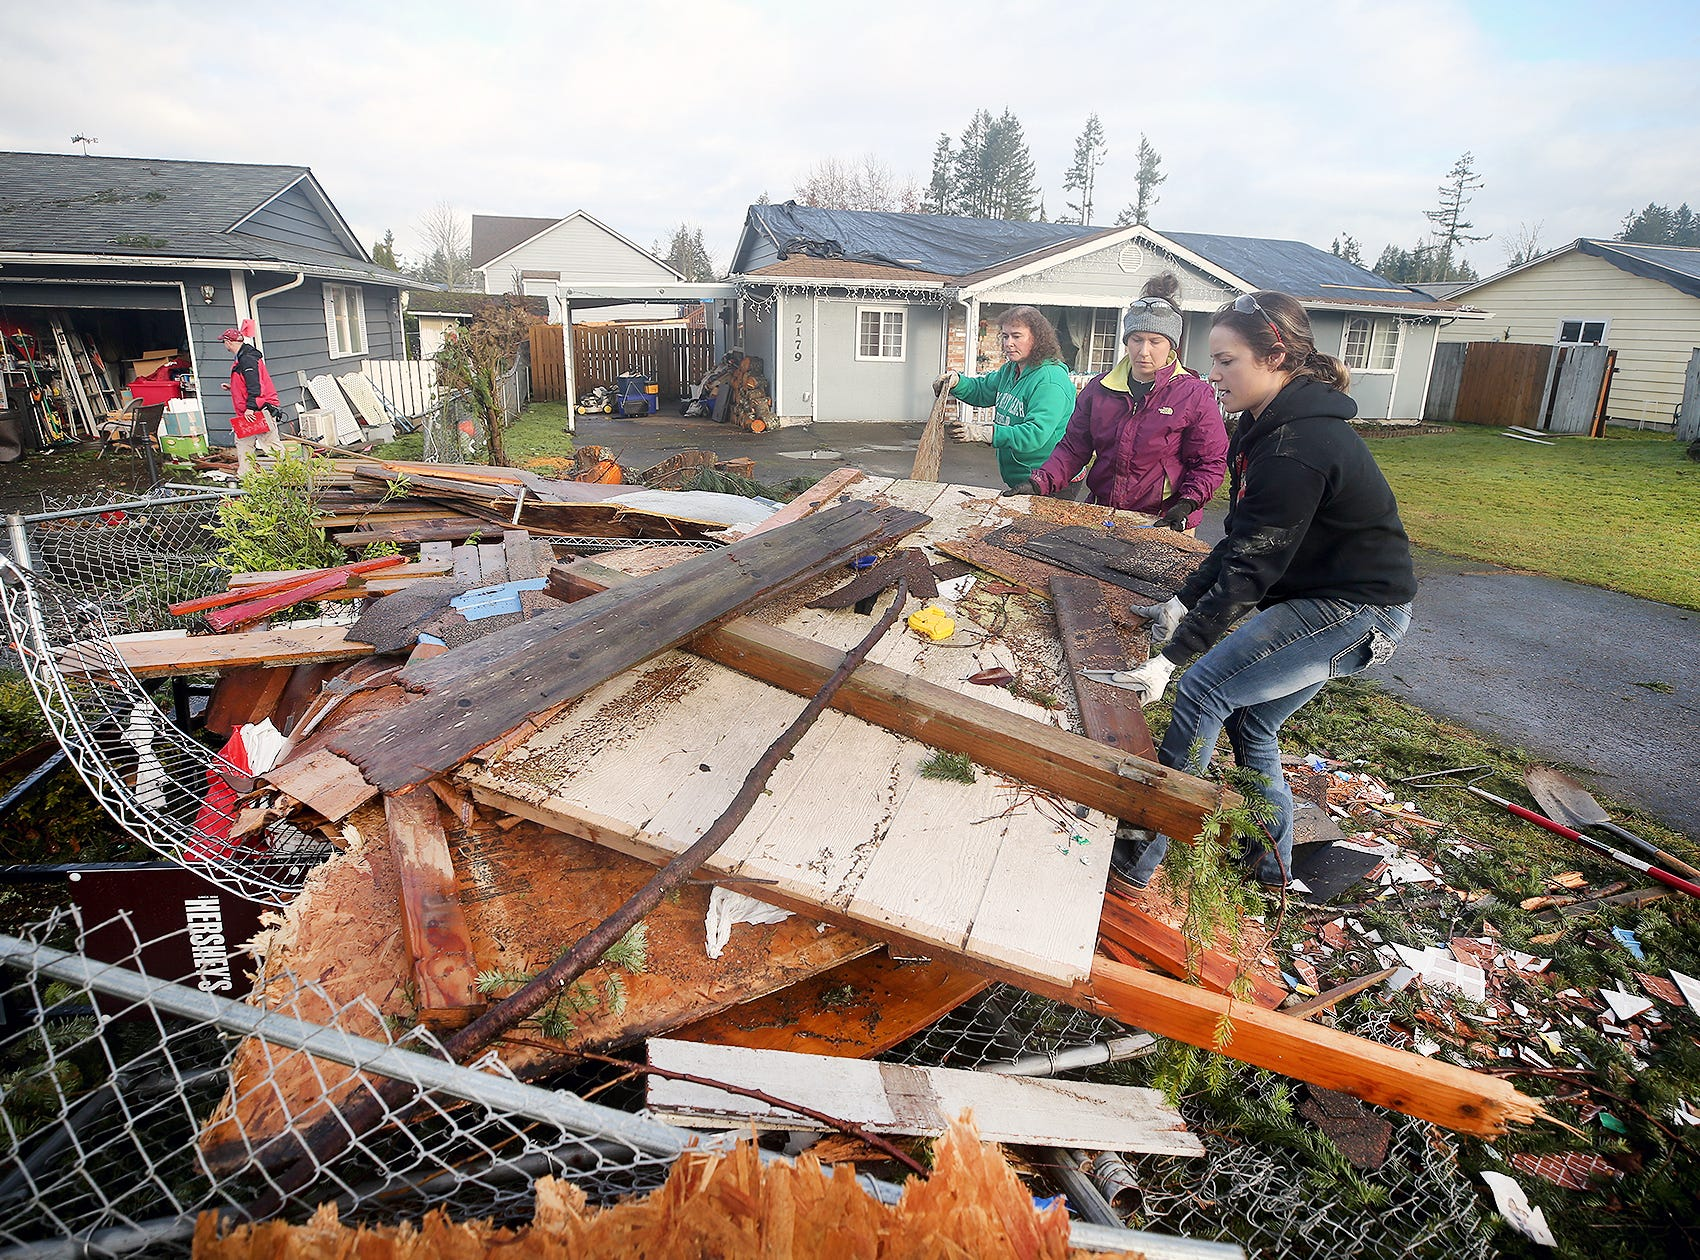 Volunteers Hollie Santos, right, and Sarah Kanyer, center, from Westcoast Fitness in Port Orchard, remove tornado debris on Thursday, December, 27, 2018, on Serenade Way in Port Orchard, Tornado victim Tonya Pettit, background in green, is helping her neighbors house she lives in the yellow hose on the far right, which was damaged.